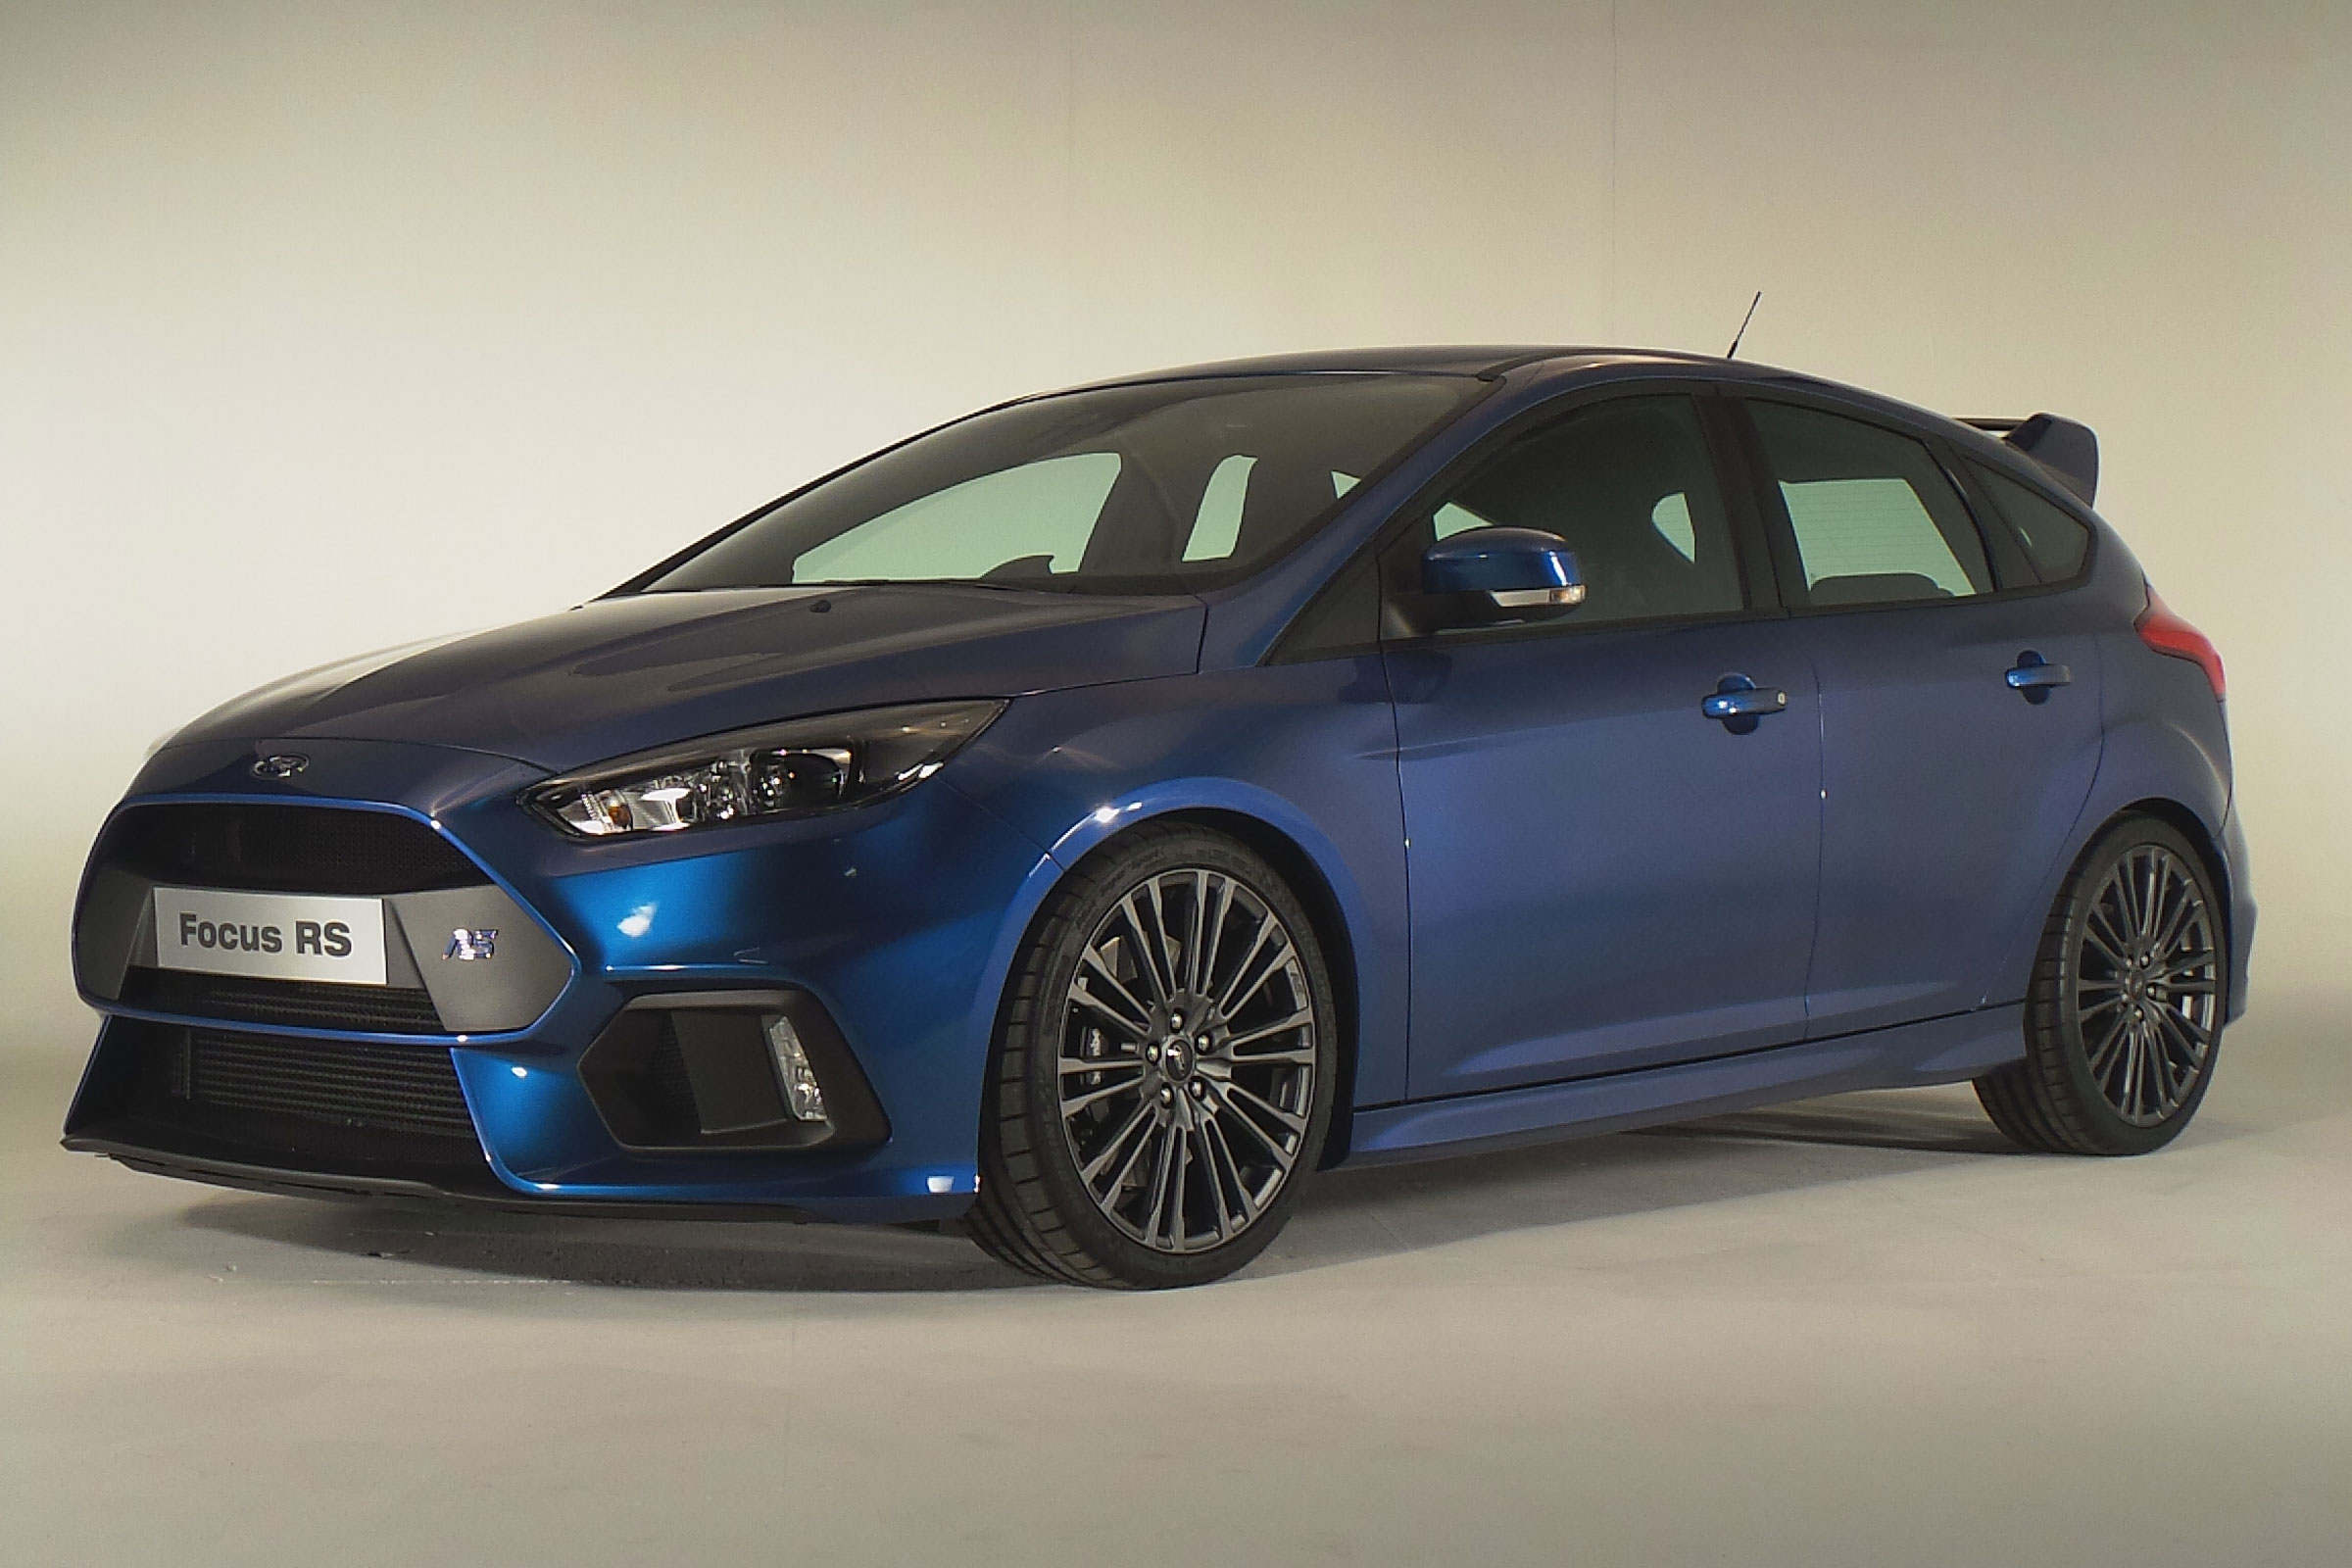 Ford Focus RS 2015 Wallpaper   HD 2400x1600